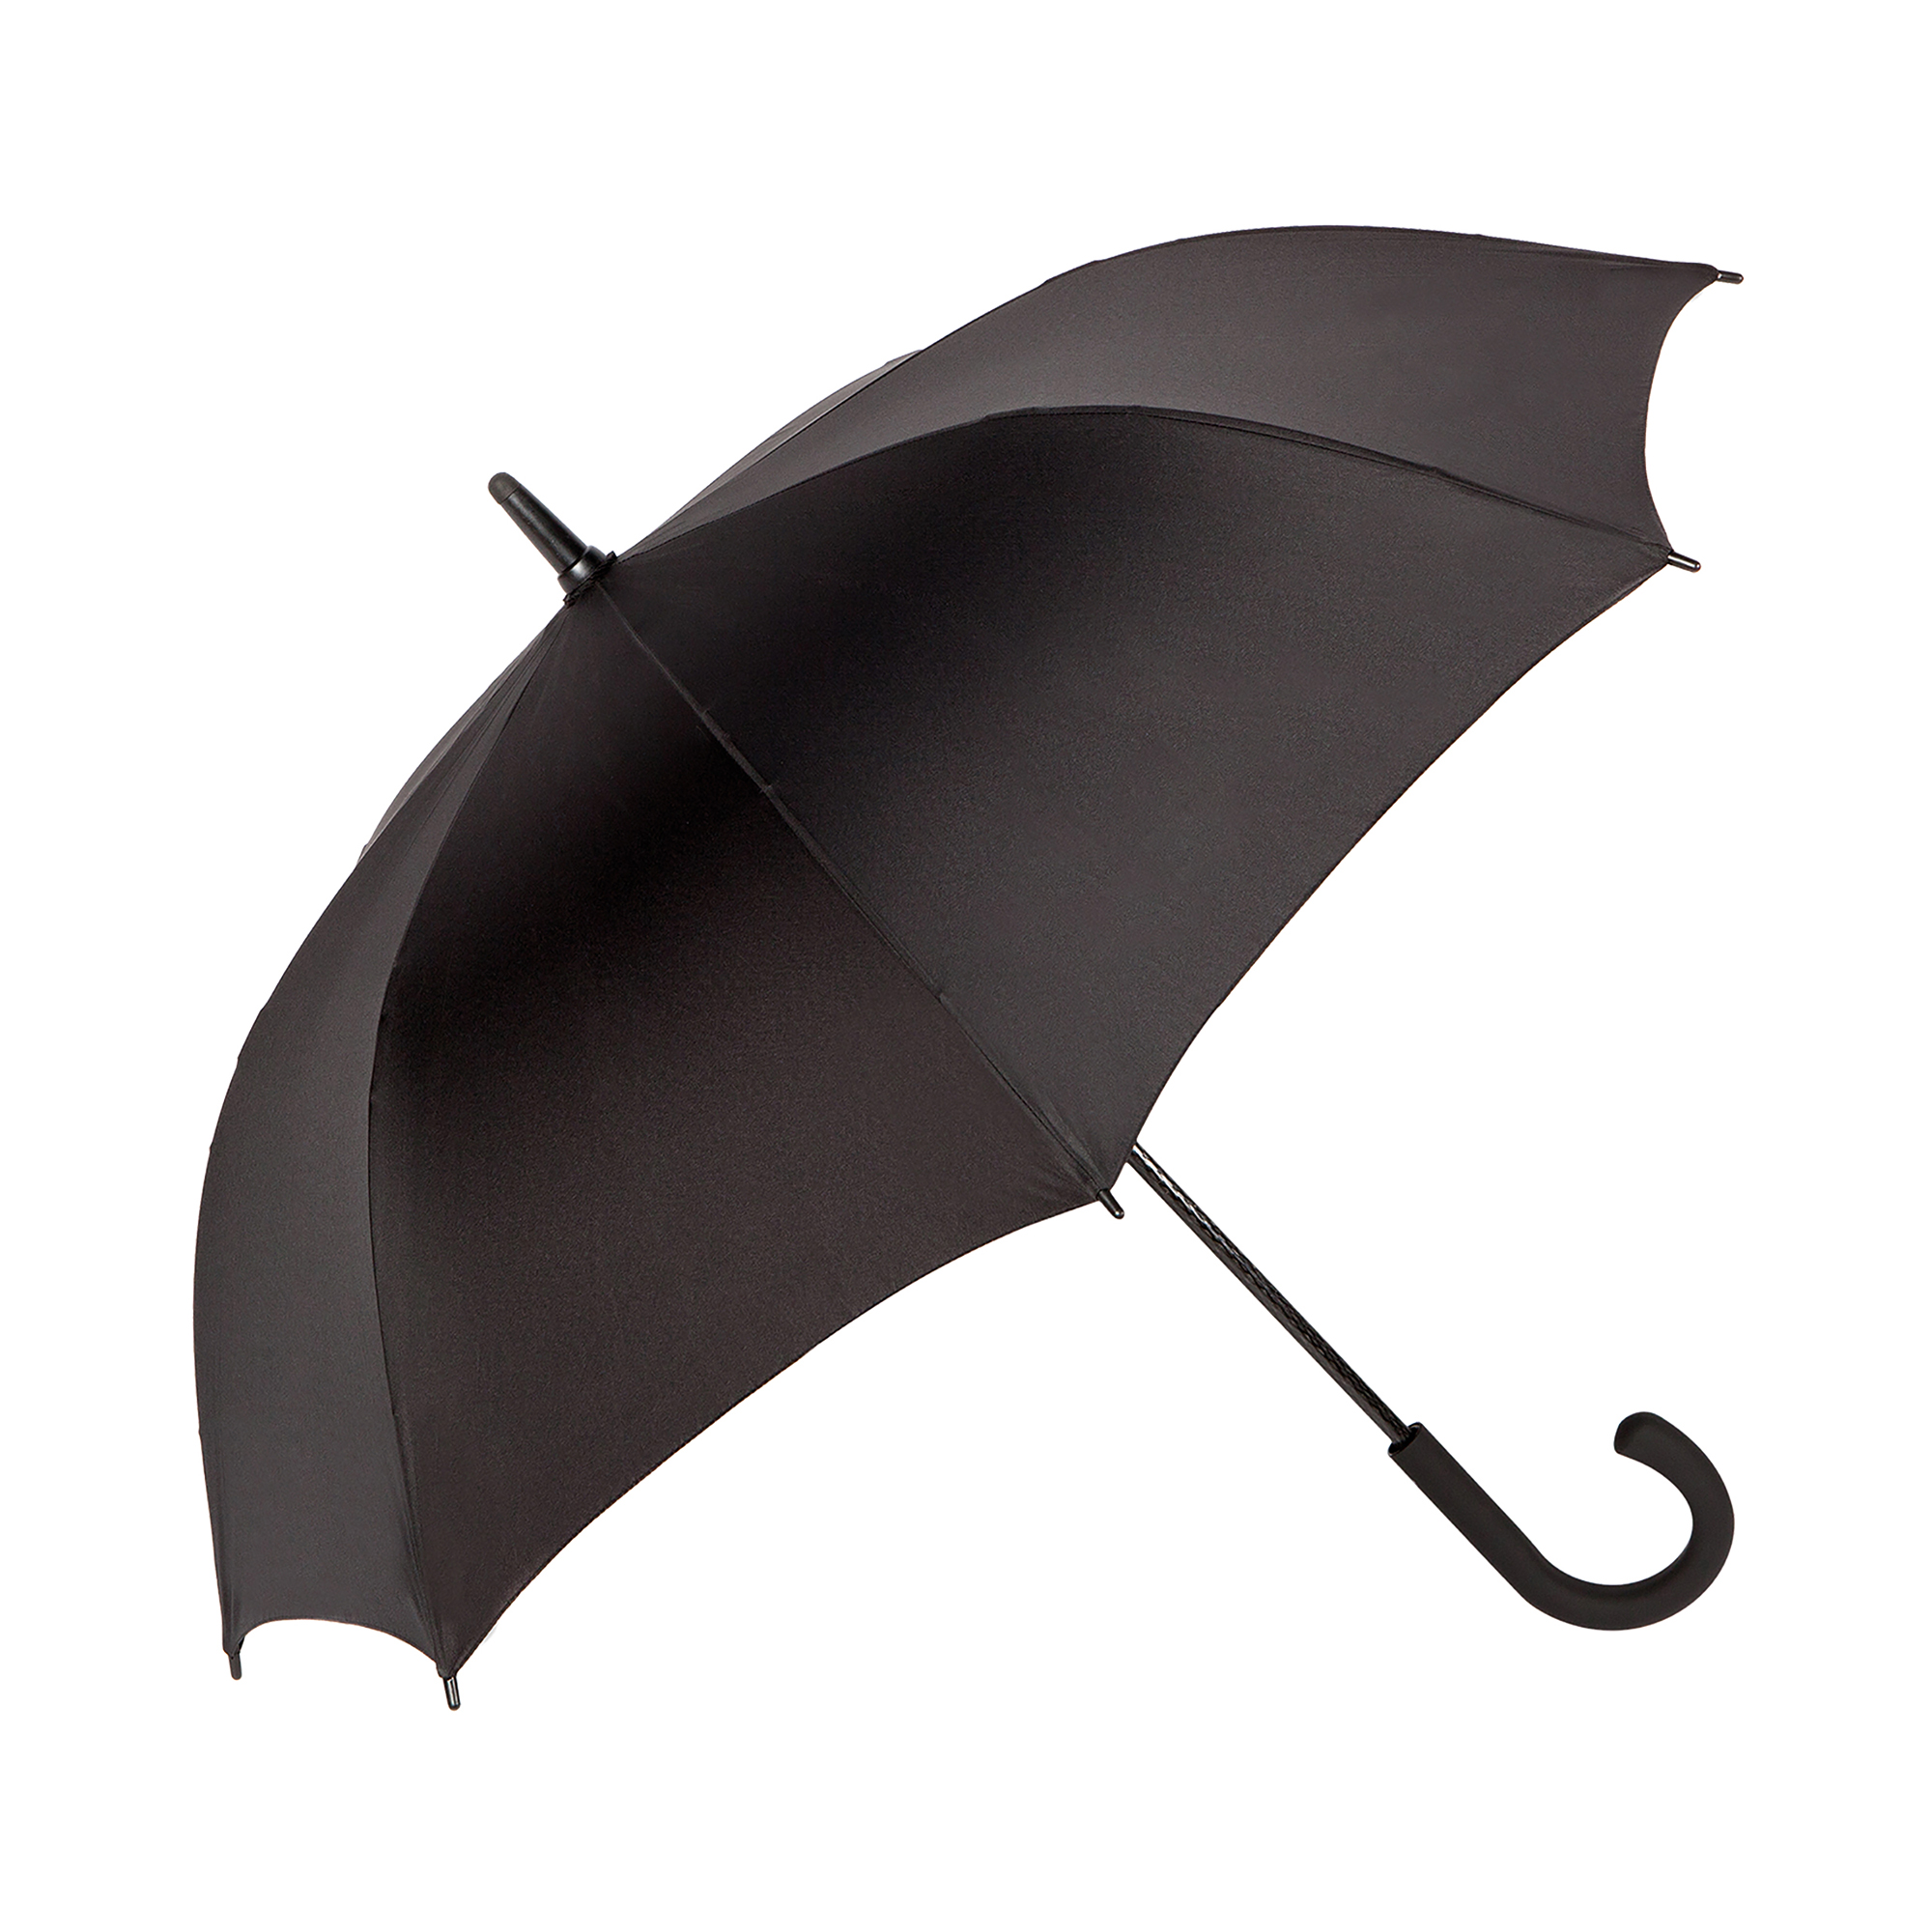 Carbon-Fibre-Shaft-Umbrella-black-fibreglass-ribs-golf-Storm-proof-102cm-40-034